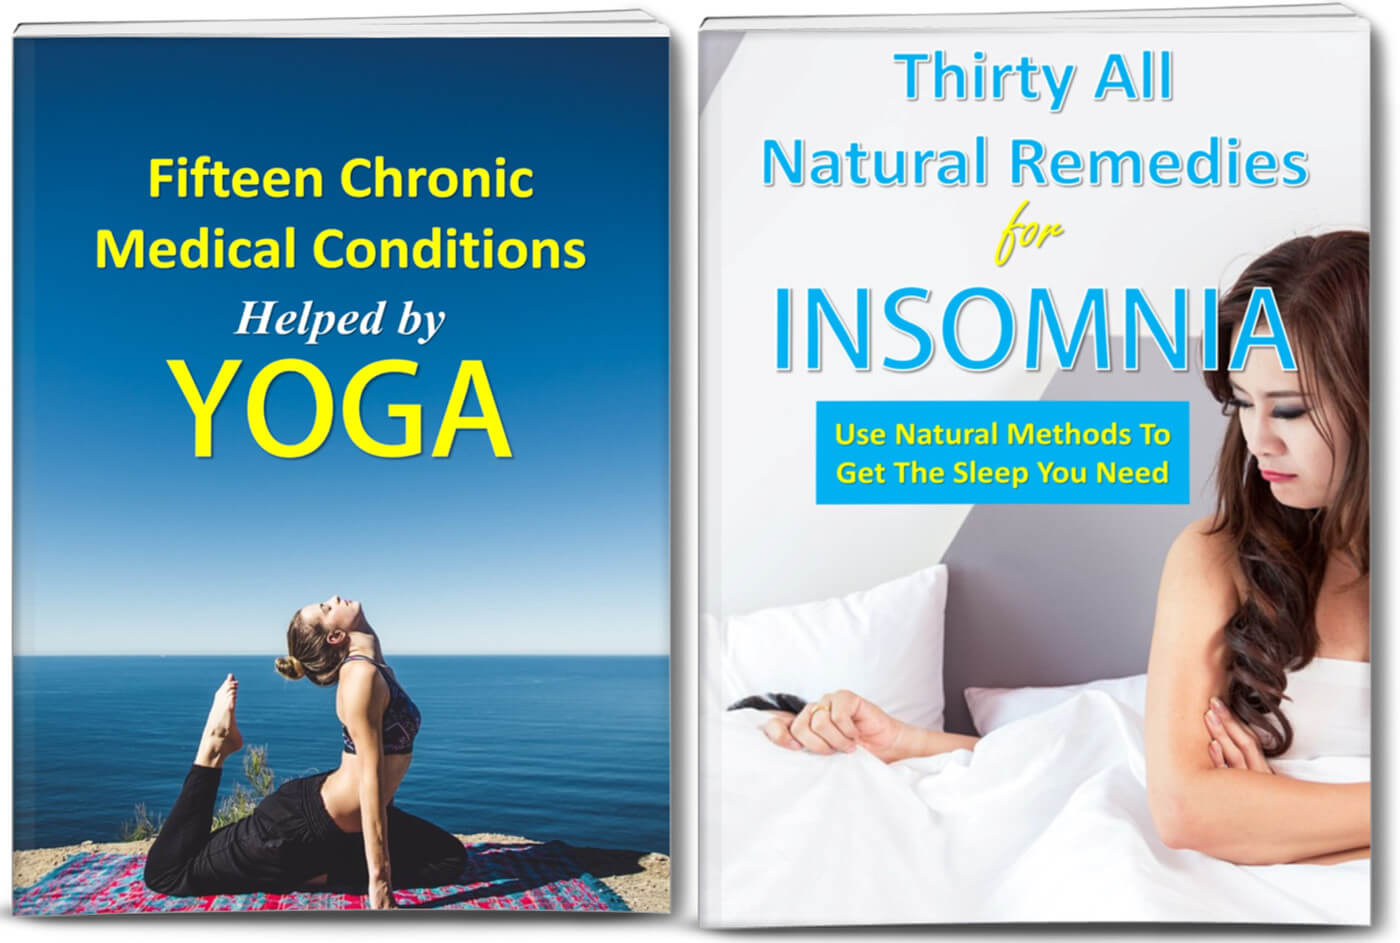 Insomnia and Yoga For Health PLR